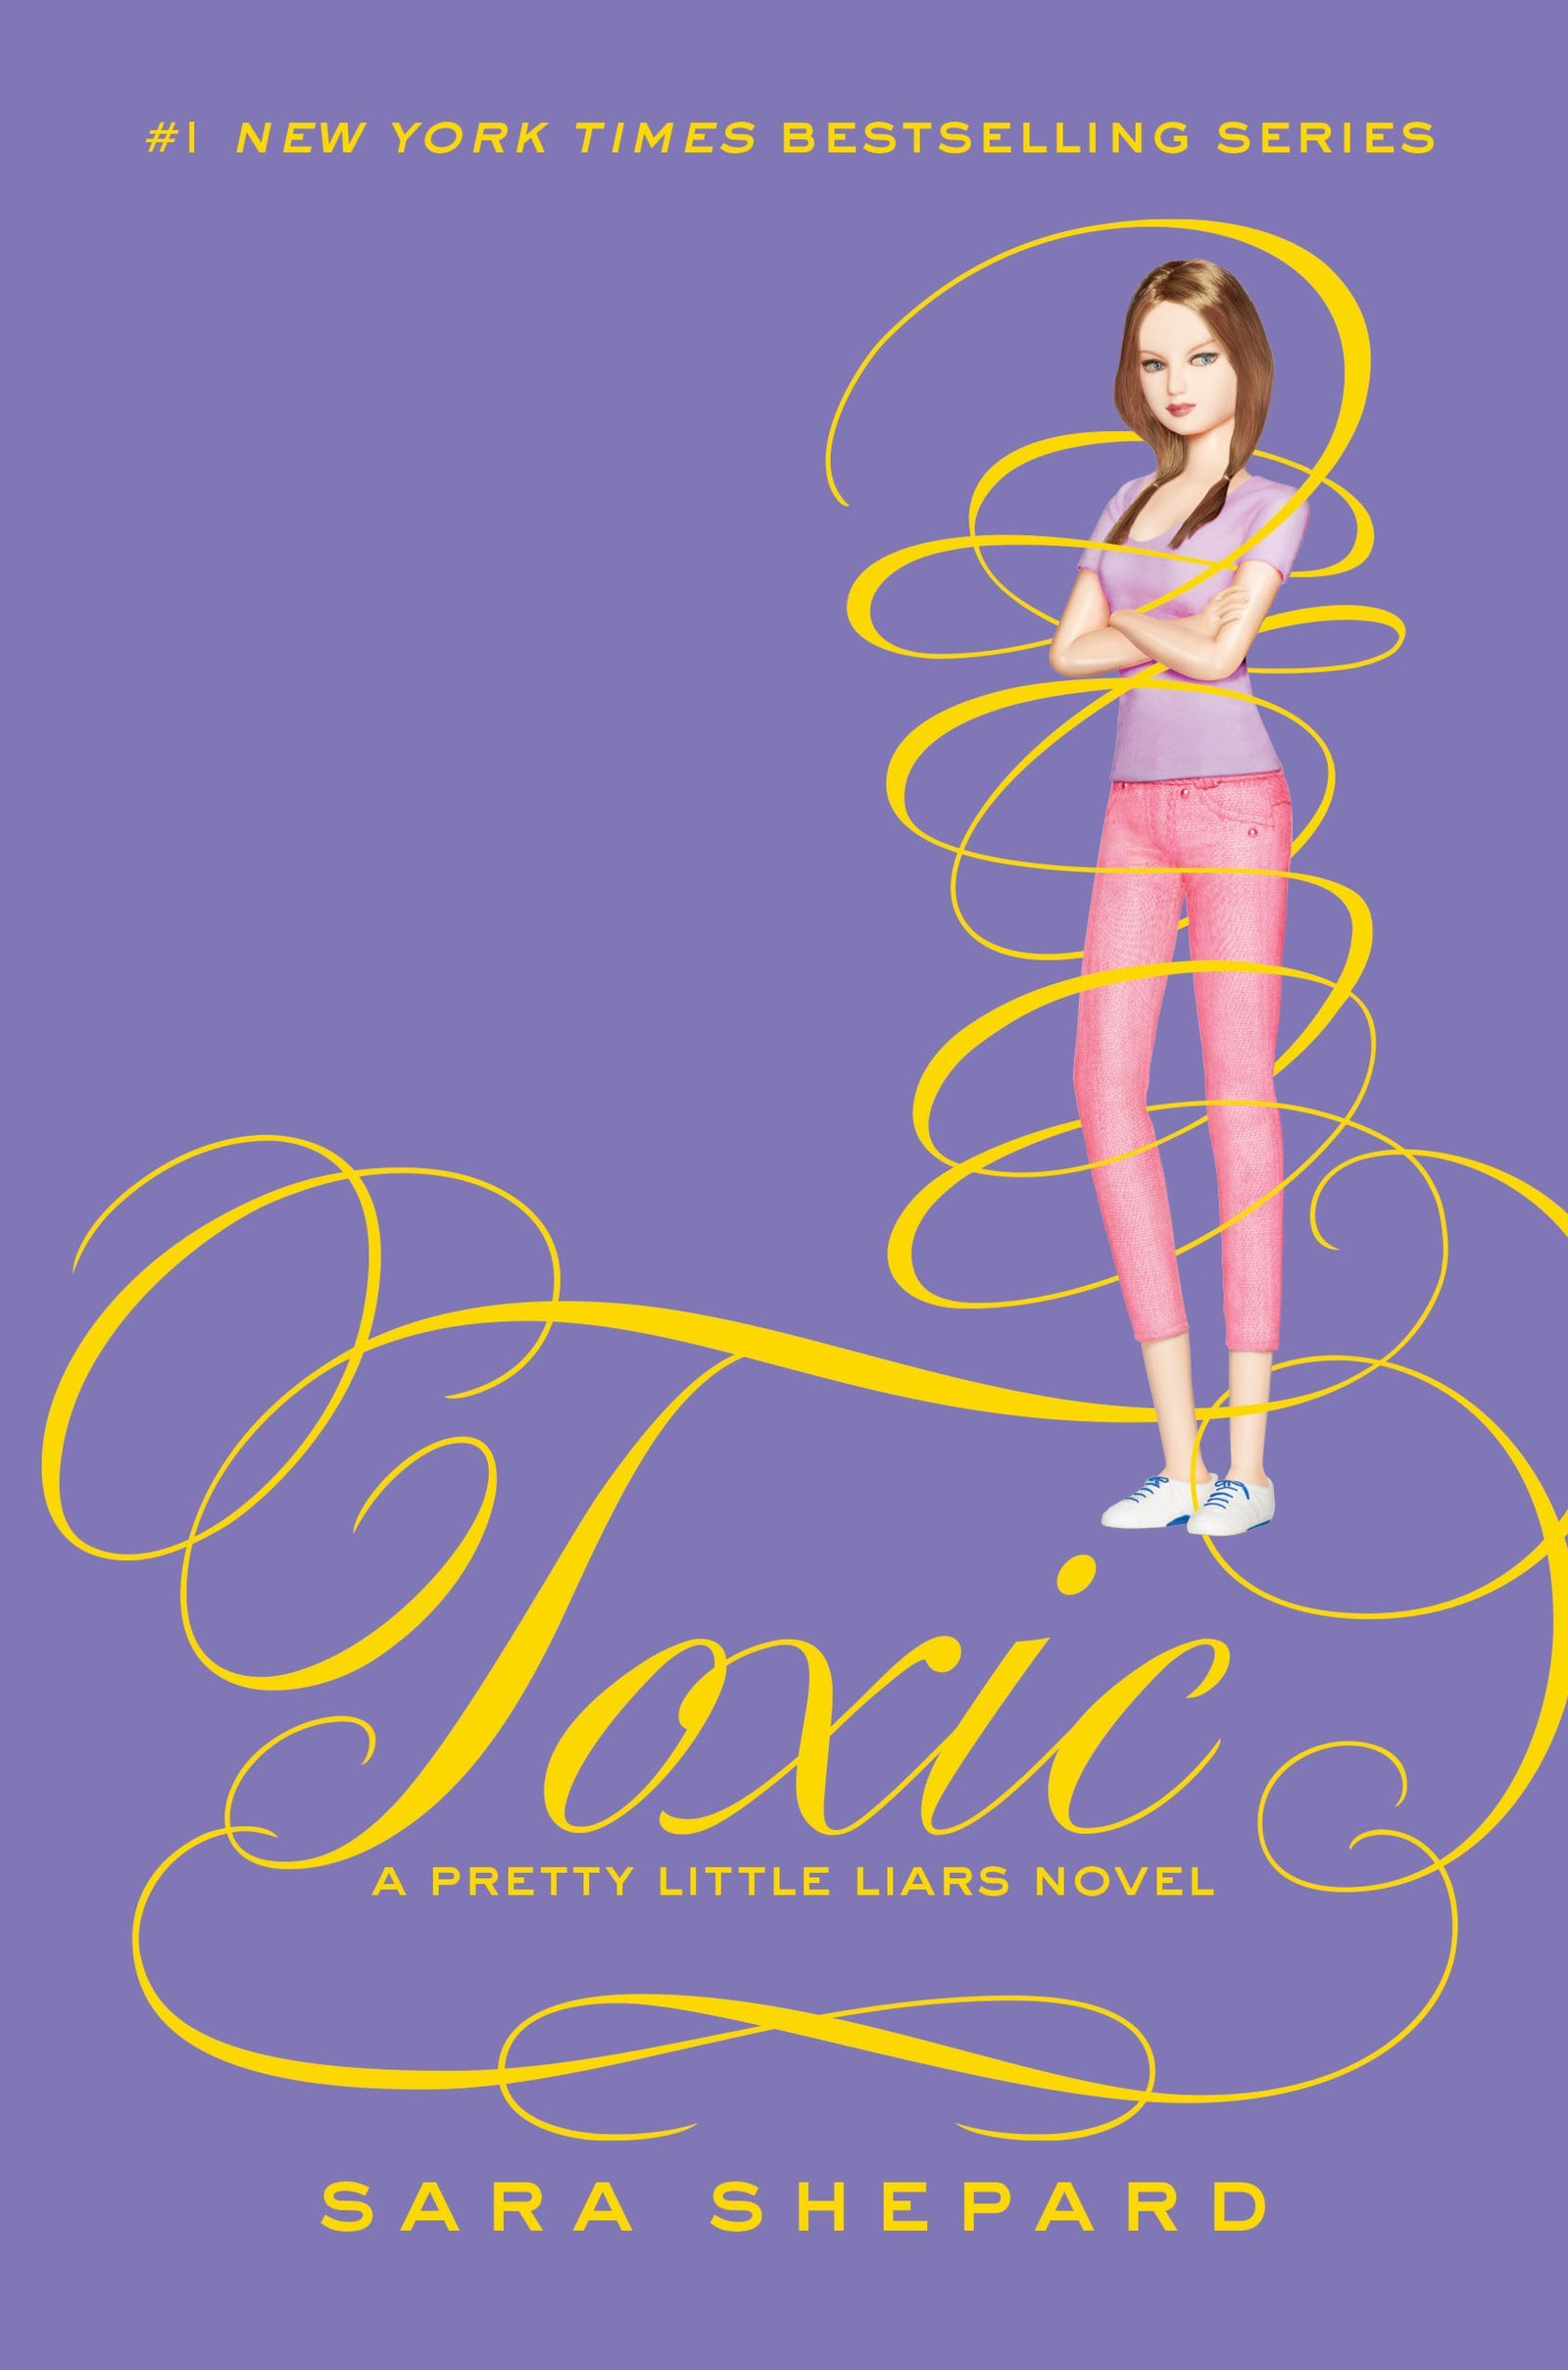 Book Cover Of Pretty Little Liars ~ The book bratz review toxic pll by sara shepard